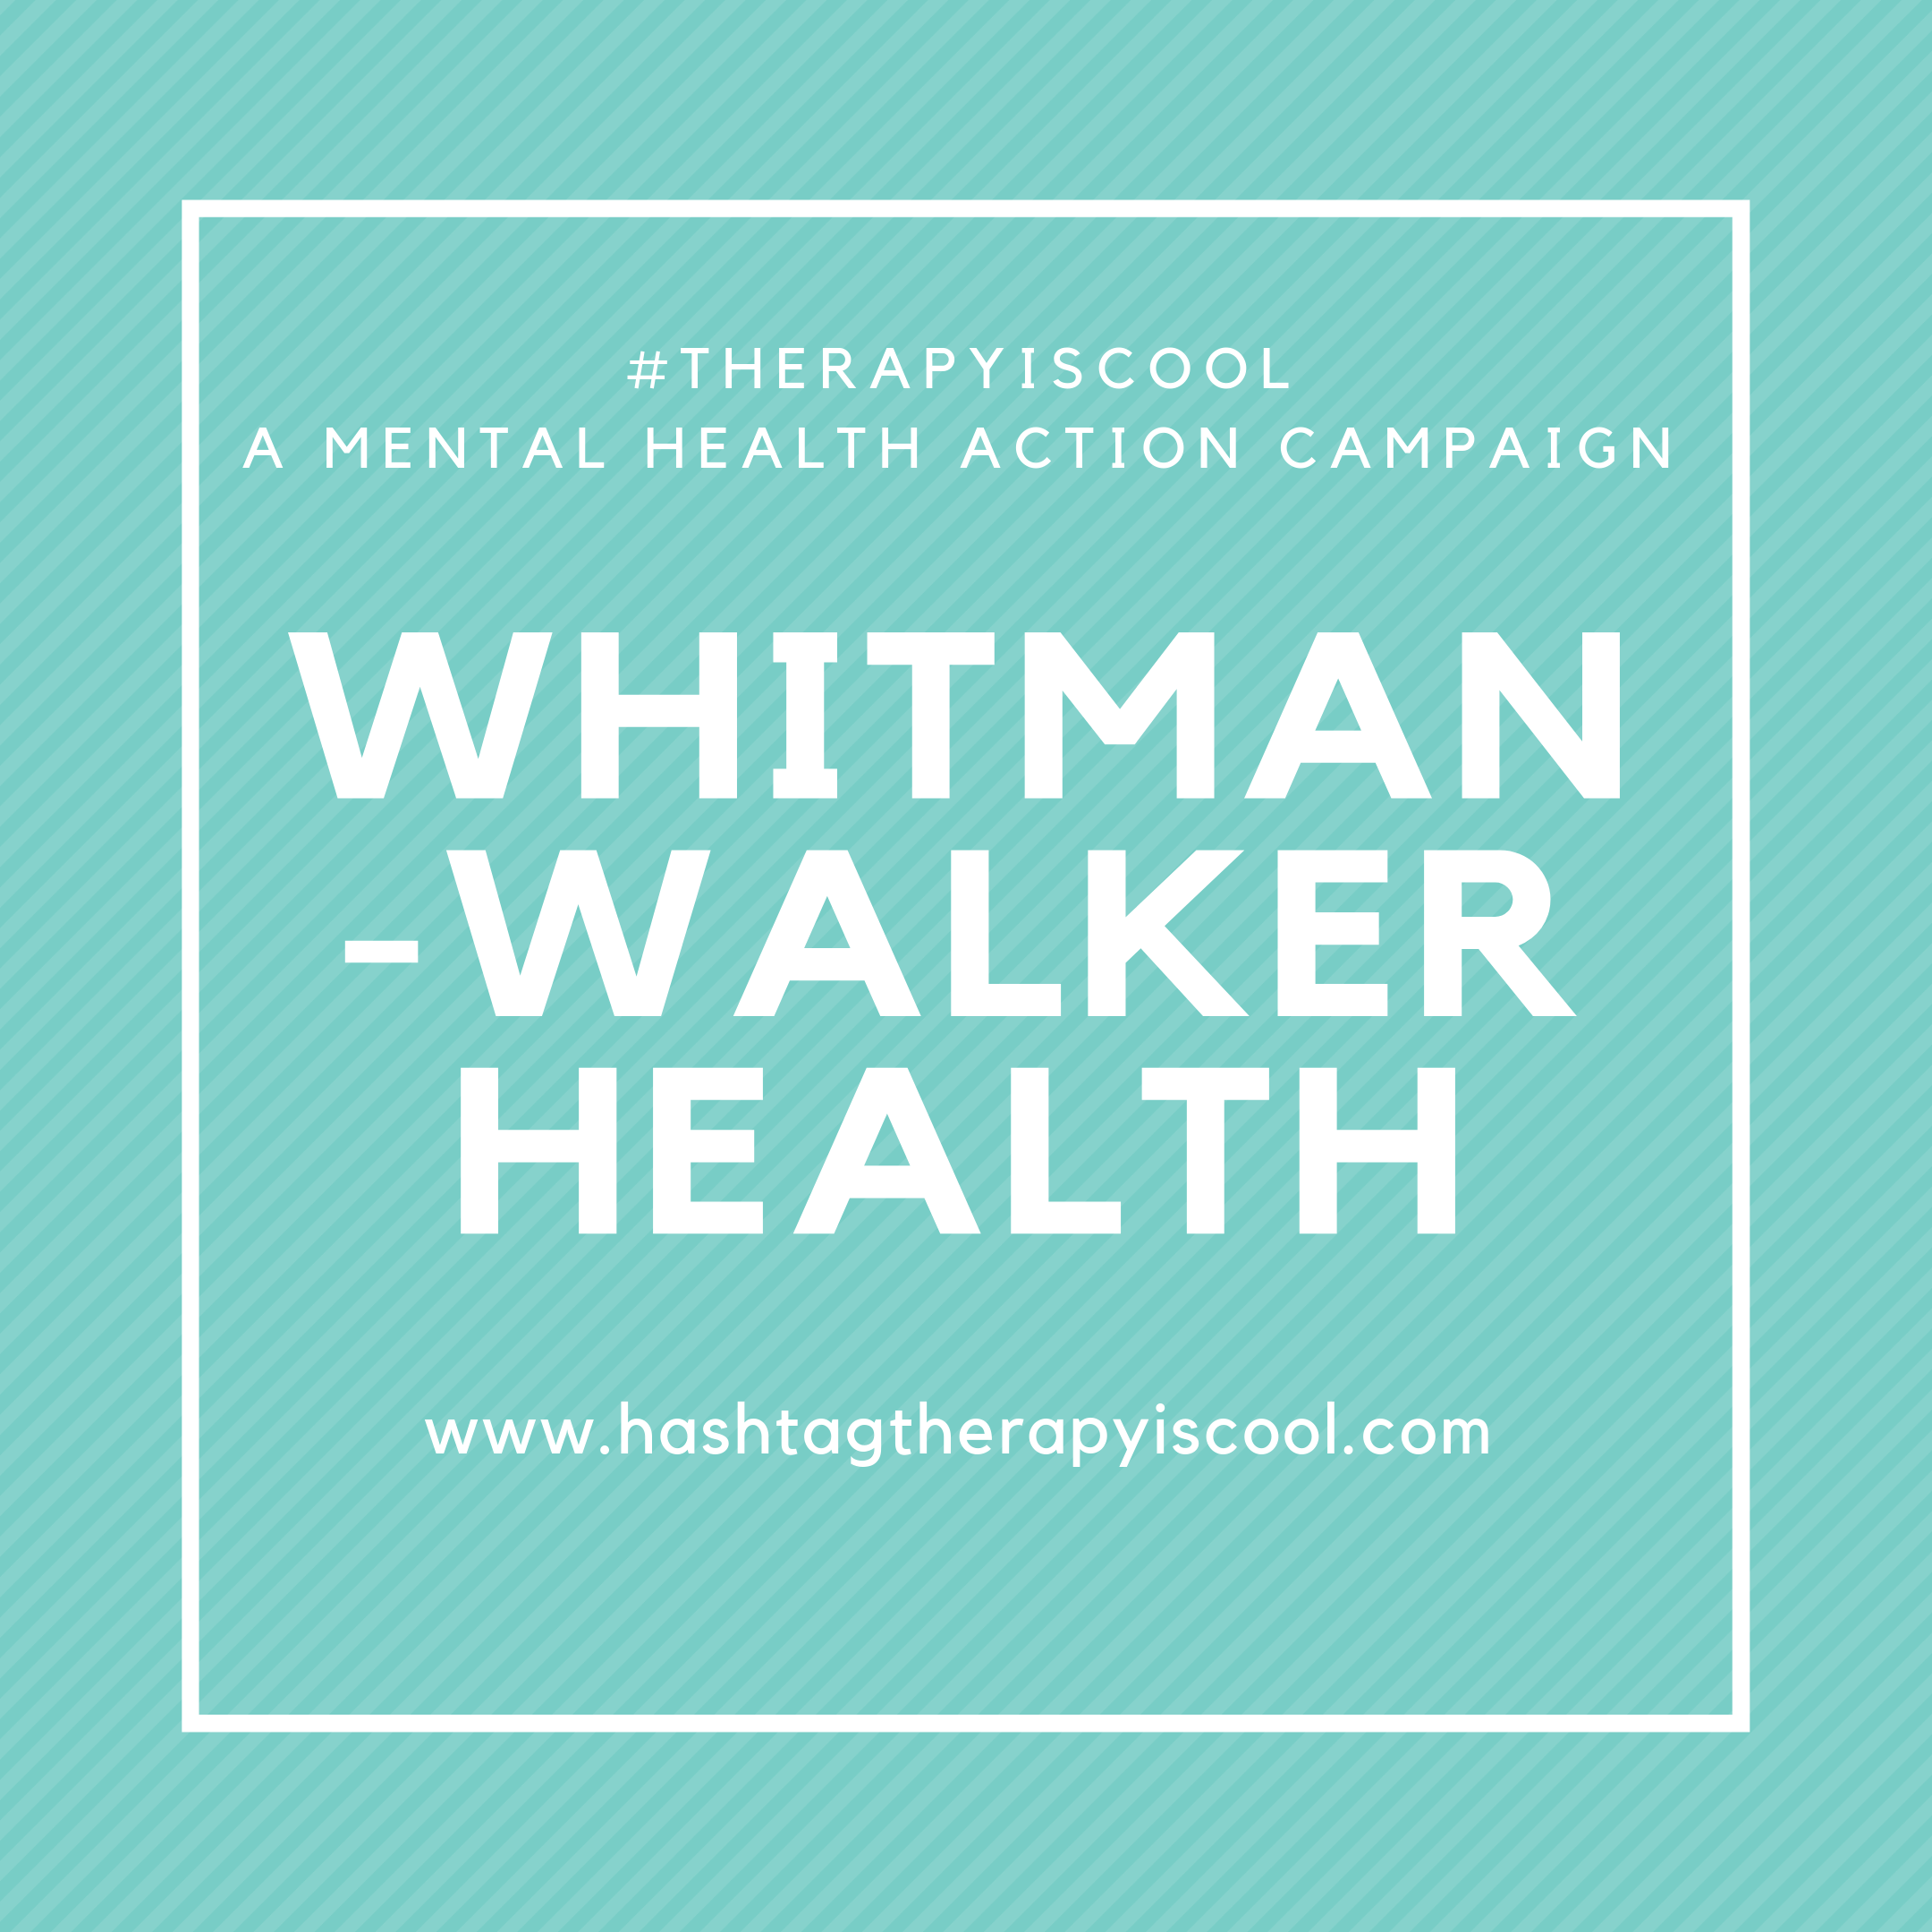 The    #therapyiscool    mental health action campaign is taking up shop in Washington D.C. in support of community efforts to make mental health treatment more accessible.  Proceeds from the purchases of    #therapyiscool    tote bags and t-shirts during the month of July will be donated to the Whitman-Walker Health.  Below is a little information provided by our friends at the Whitman-Walker Health:  ① Name of the organization: Whitman-Walker Health (WWH) ② Founded in: 1978 ③ Services provided:   Our Behavioral Health programs include peer support, substance use services, mental health, and psychiatry. We offer services to both adults and youth. Individual and group therapy options are offered.    ④ Population served: Whitman-Walker Health offers affirming community-based health and wellness services to all with a special expertise in LGBTQ and HIV care. We empower all persons to live healthy, love openly, and achieve equality and inclusion.  ⑤How does the Whitman-Walker Health use their donated funds: Donations allow us to provide high-quality, compassionate care for all members of our community, regardless of their ability to pay. Your support helps ensure that we continue to be a place where the gay, lesbian, bisexual, transgender and queer communities, as well to those living with or affected by HIV feel supported, welcomed and respected.     To learn more about Whitman-Walker Health, please visit   https://www.whitman-walker.org/